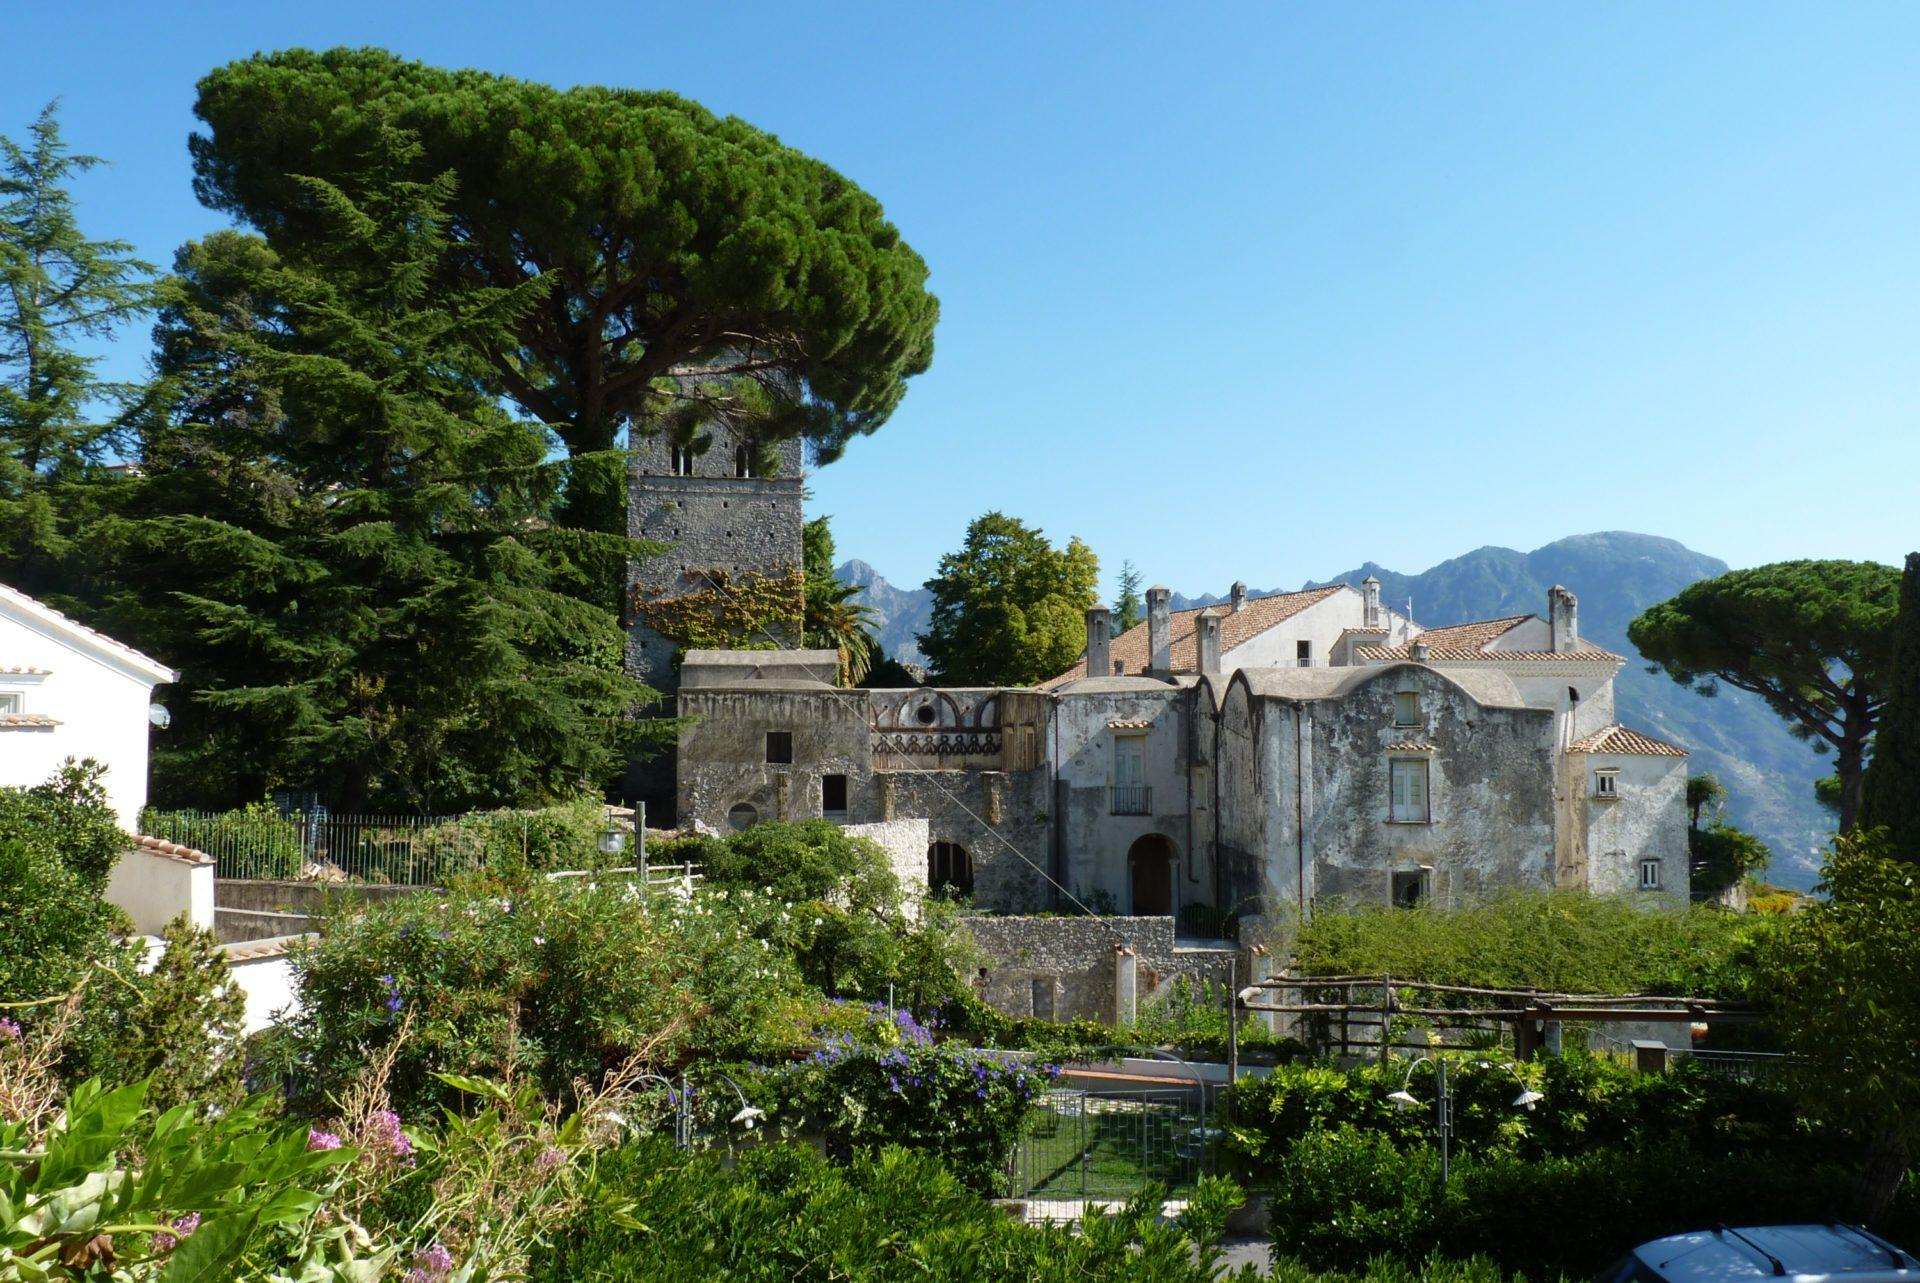 The Day My Imagination Ran Riot in Ravello by Margaret Sims